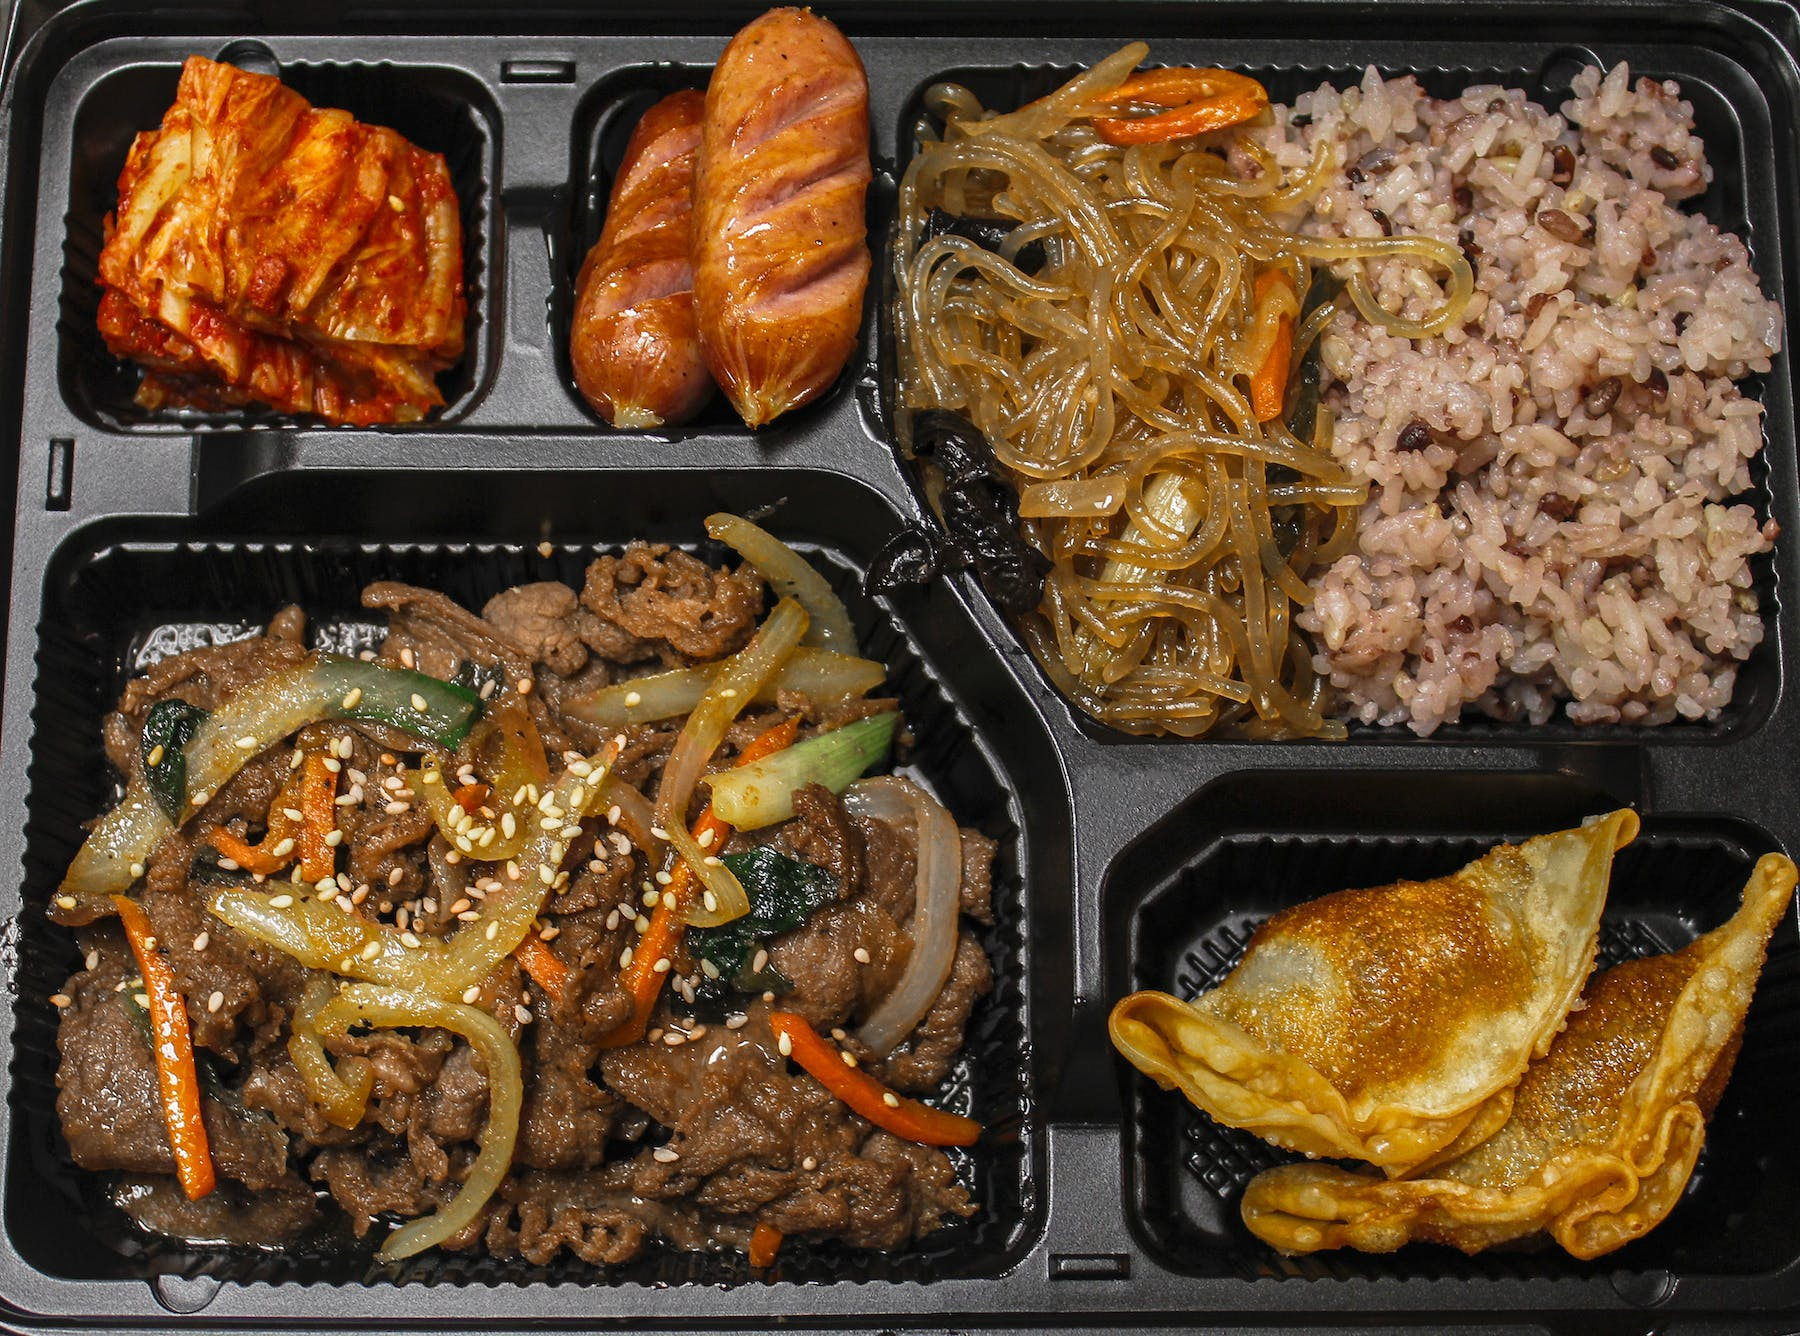 a tray of food on a grill